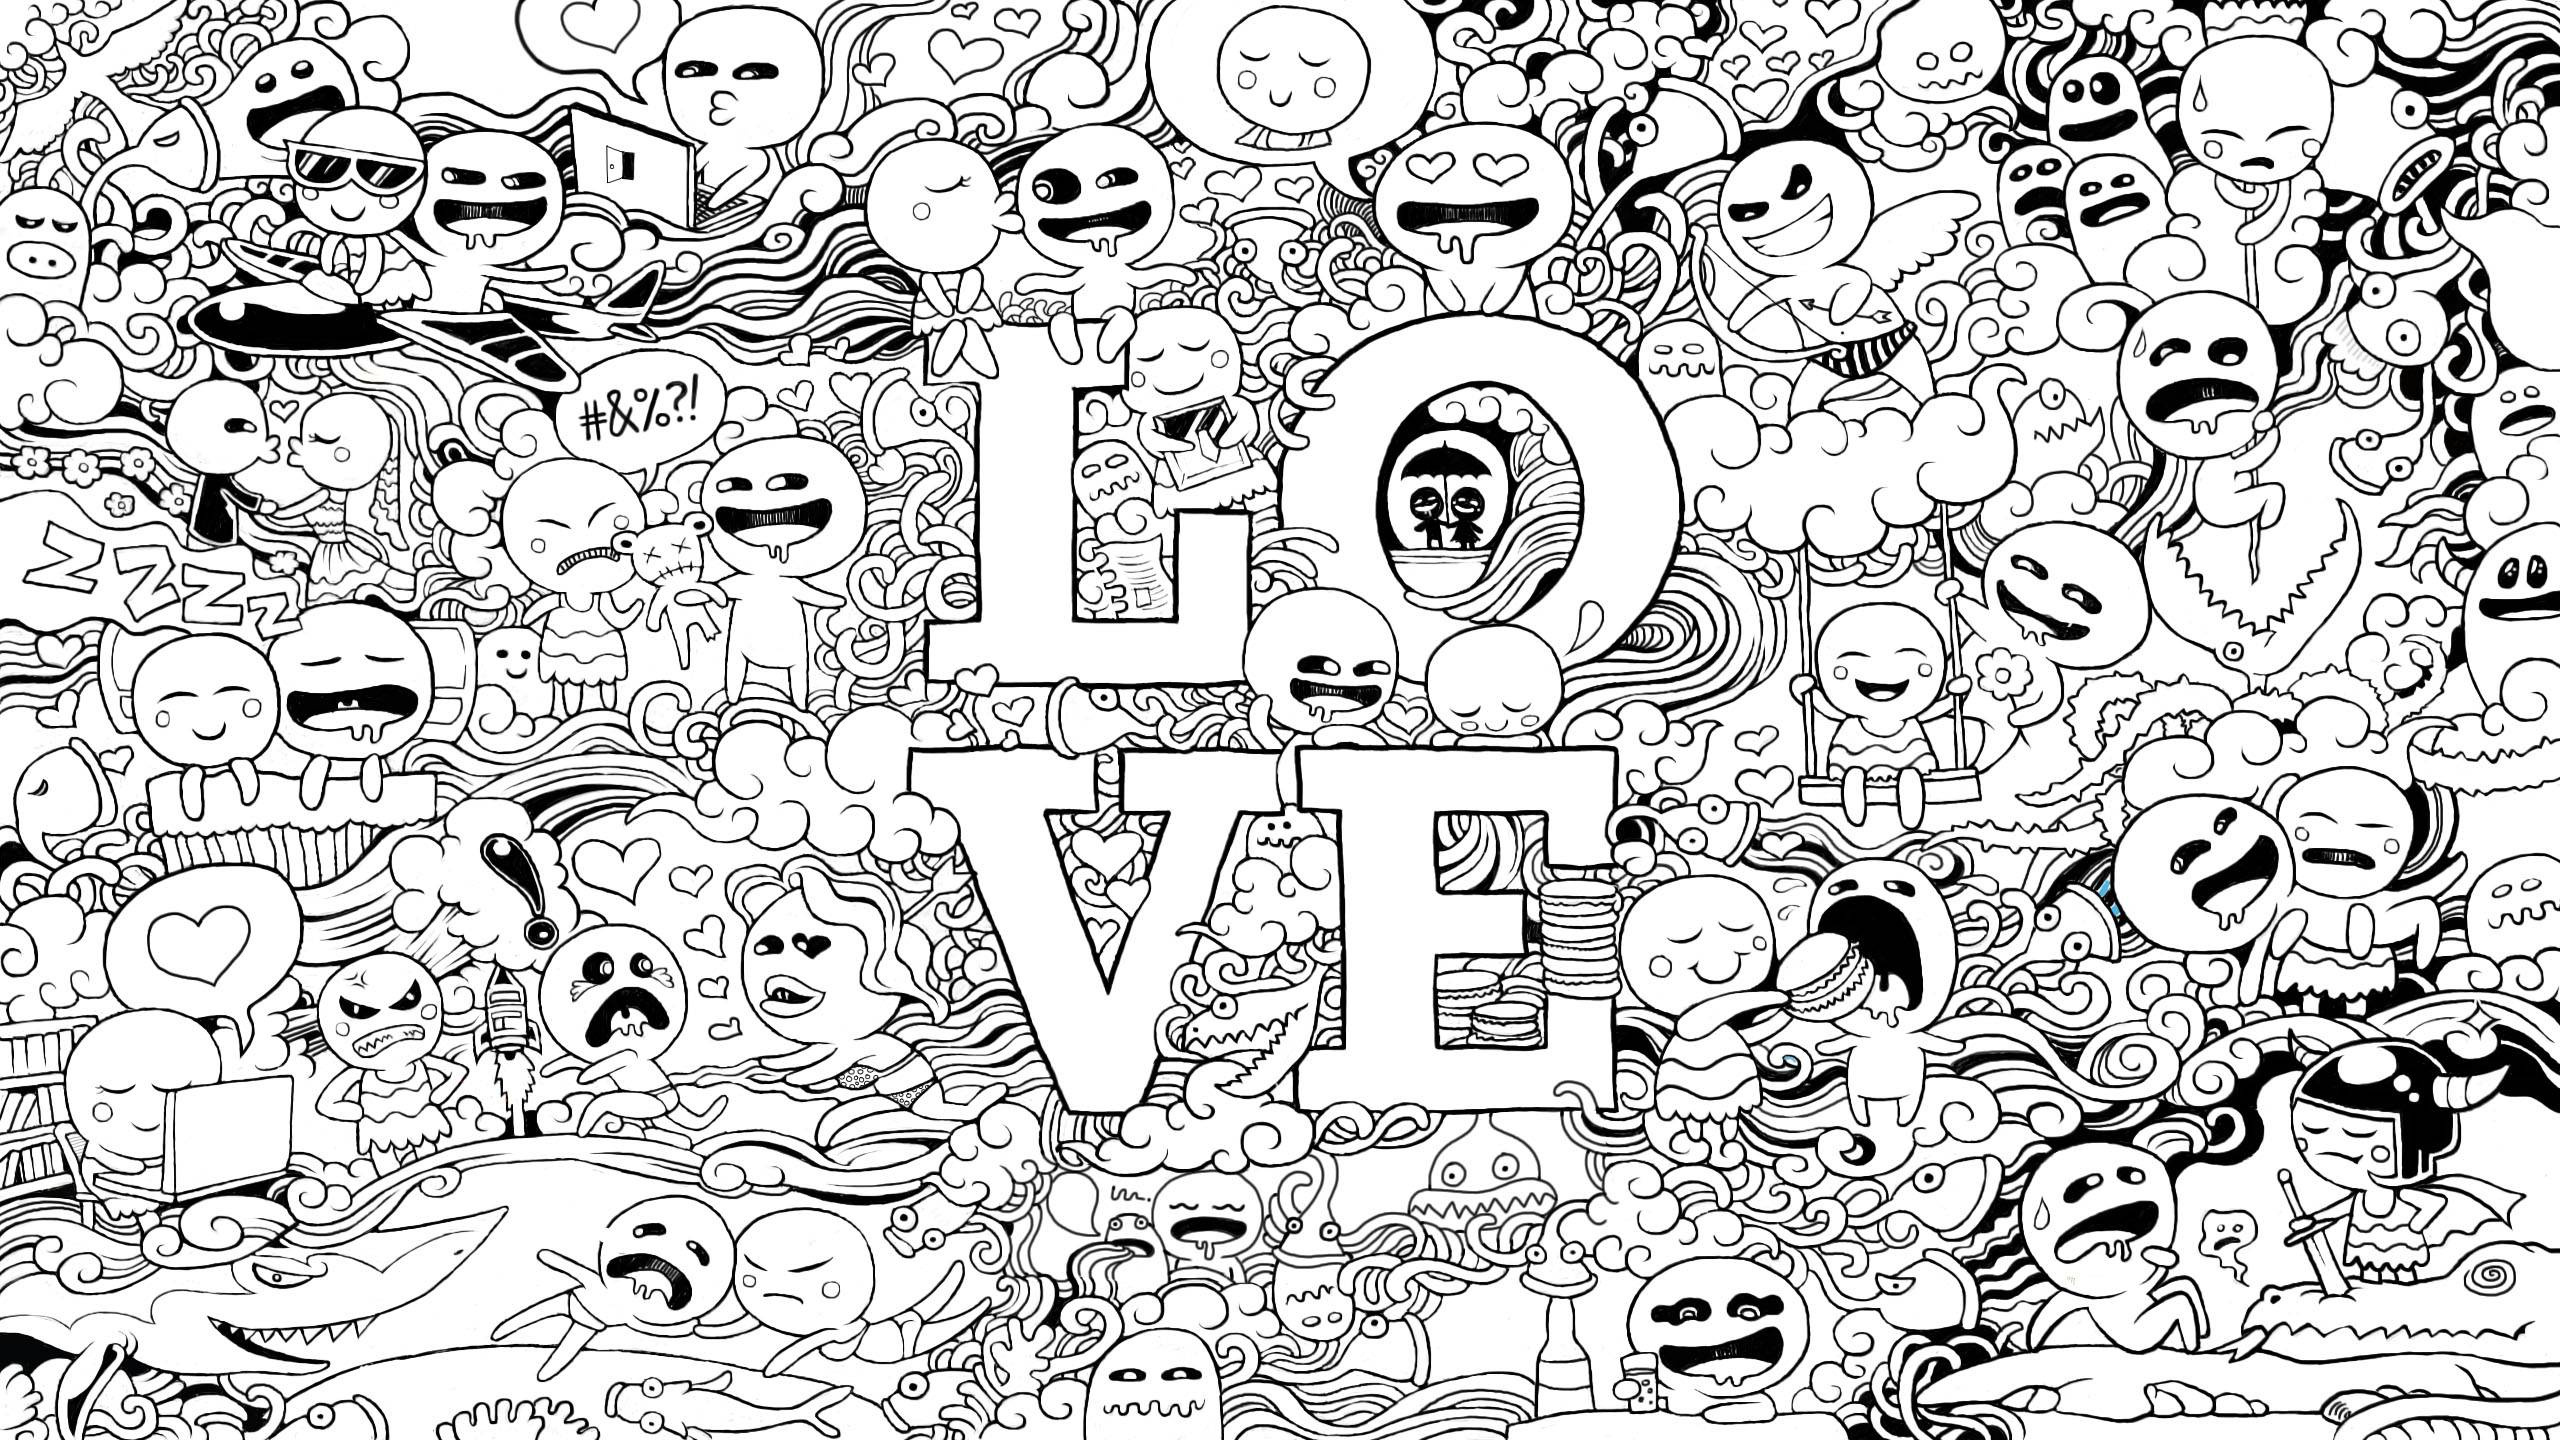 Wallpaper Freebie For February 2013 LOVE Doodles You The Designer